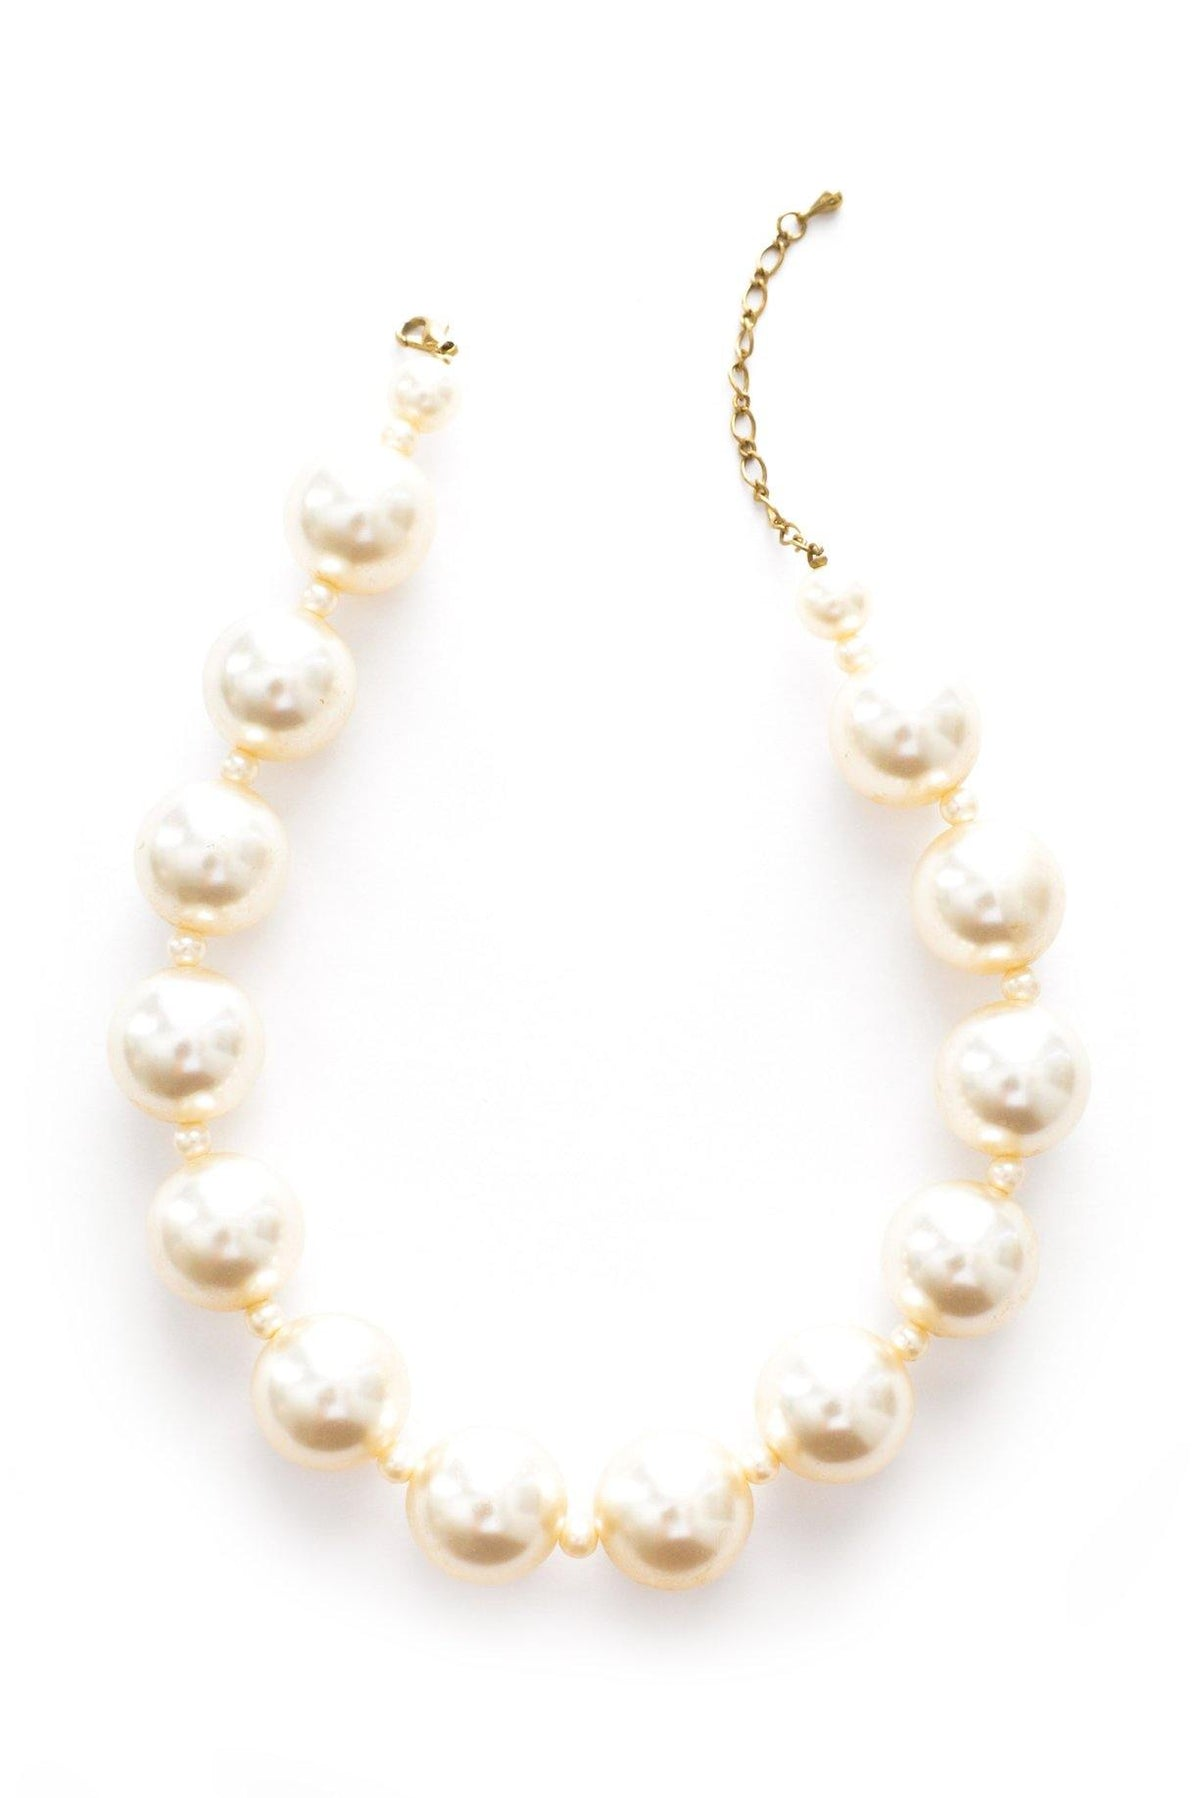 Pearl statement necklace from Sweet & Spark.